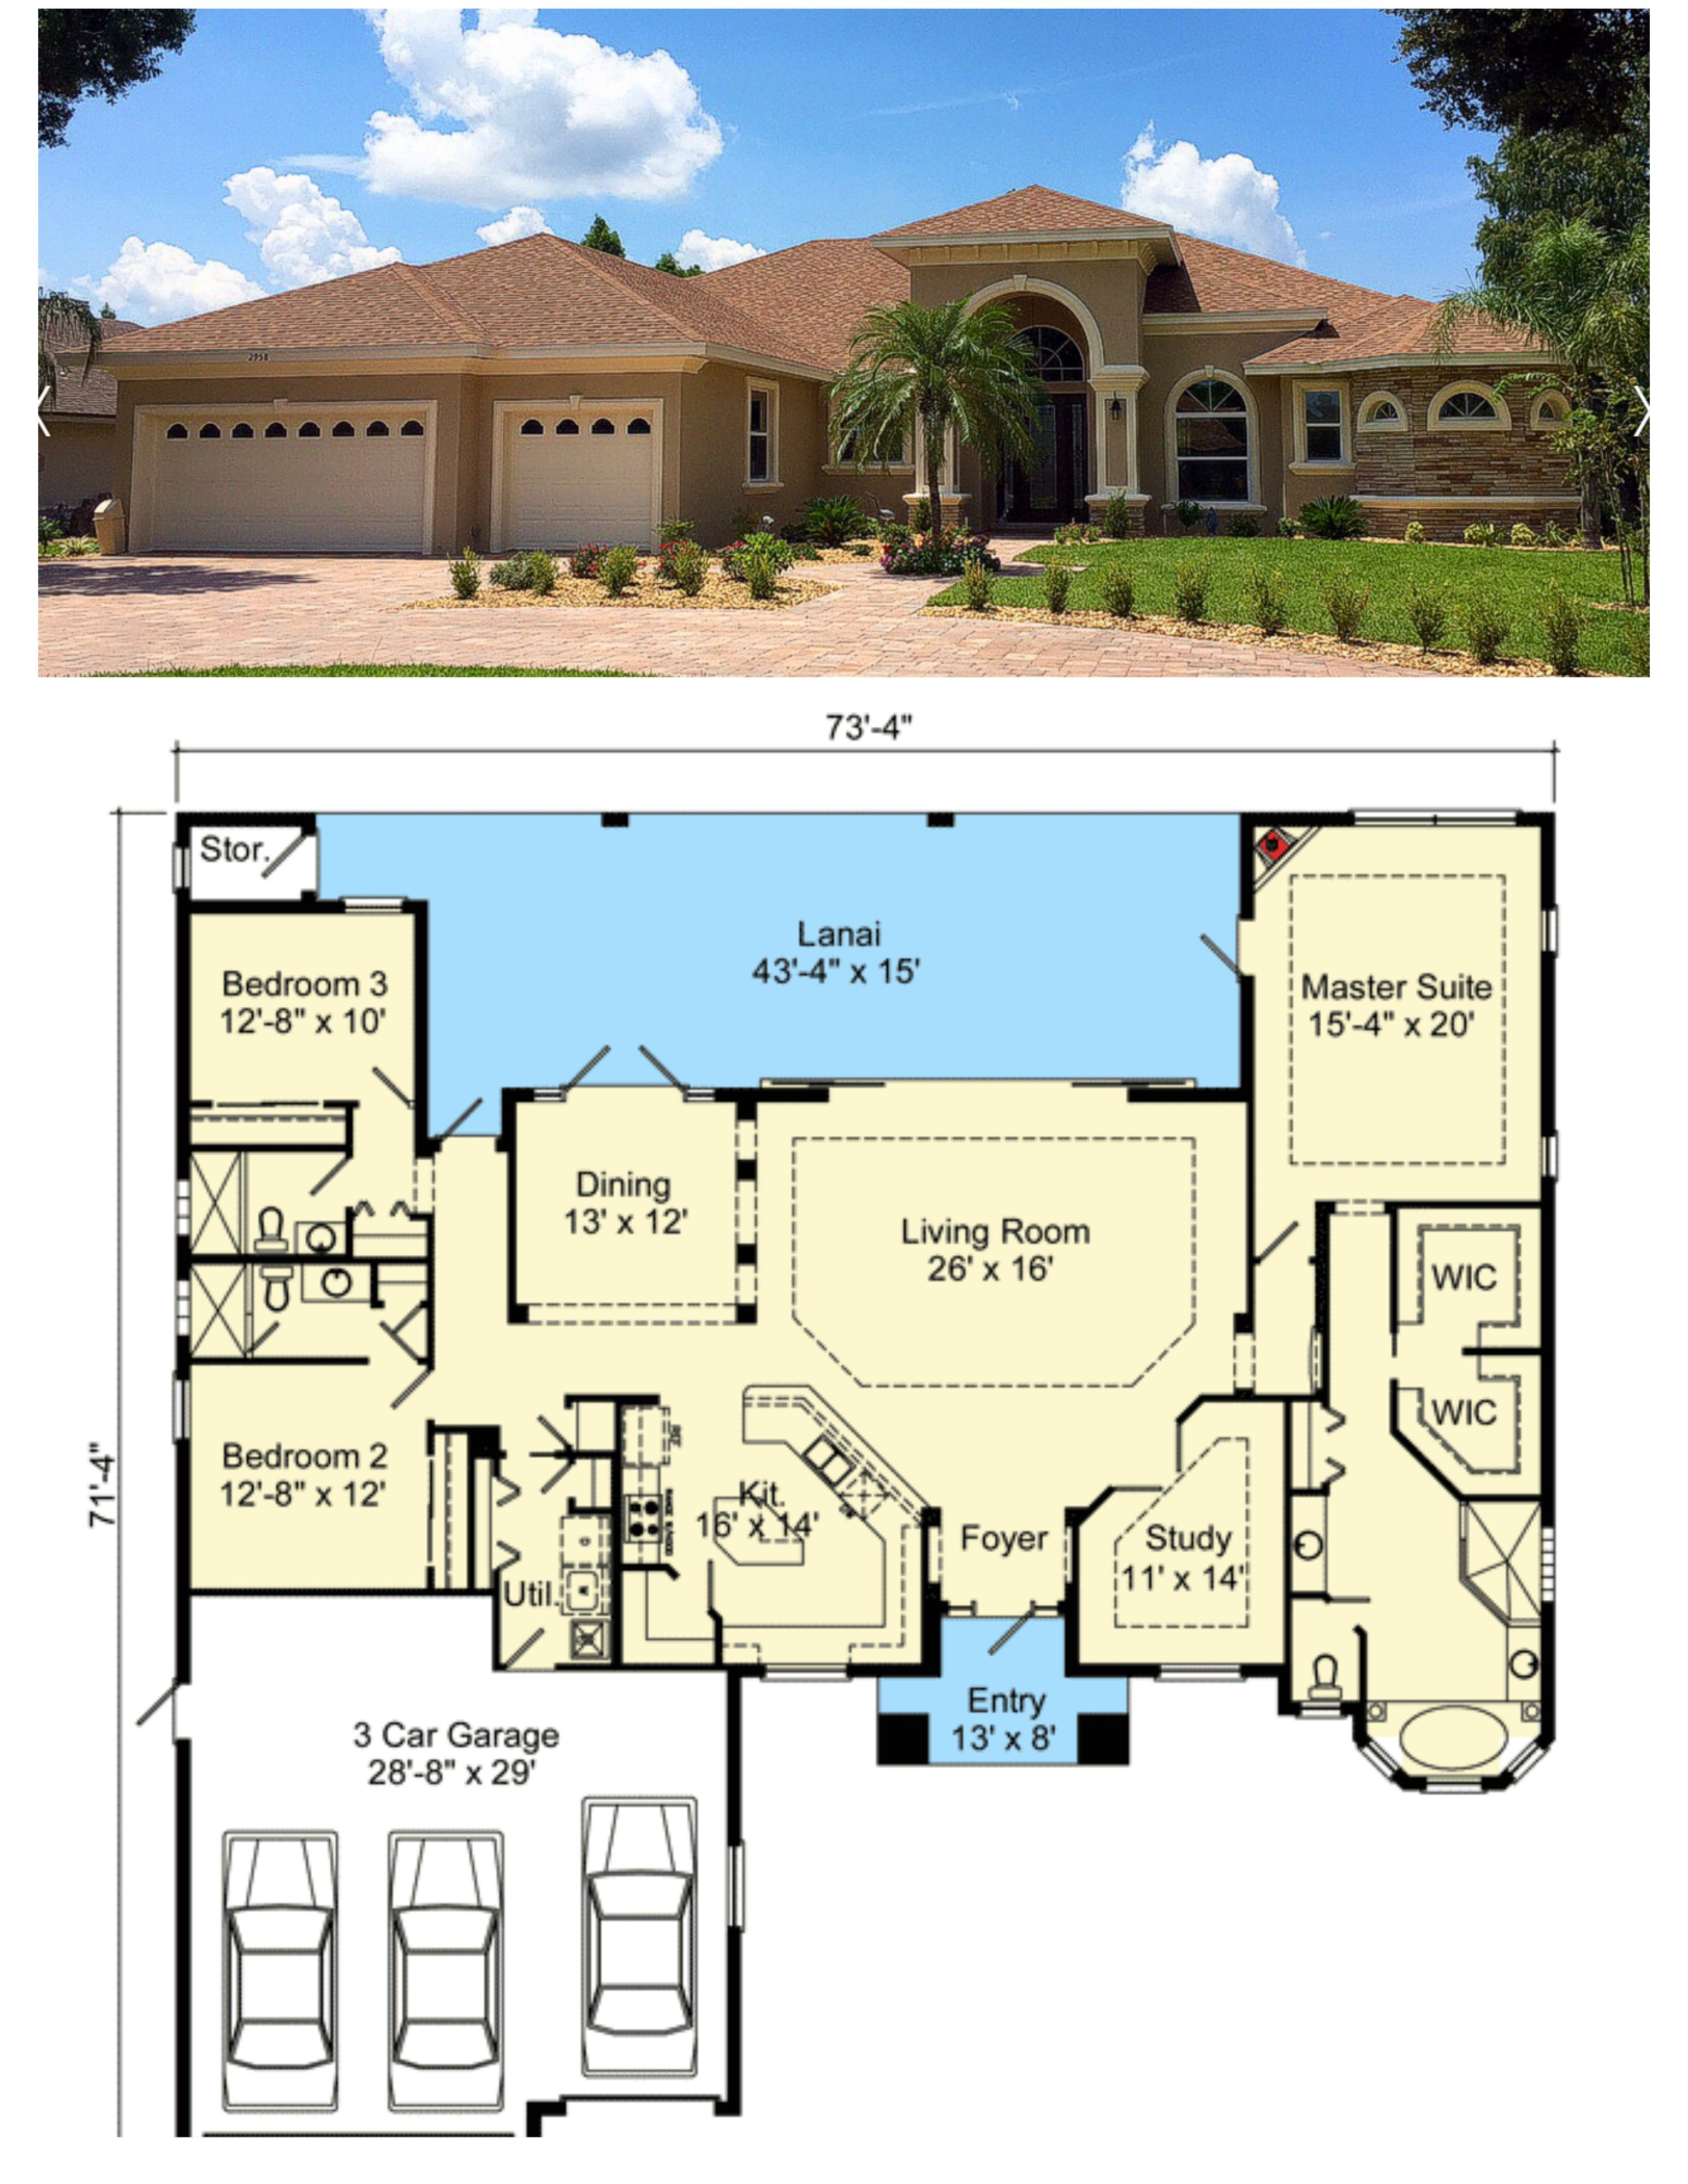 135 Sq Ft For Mediterranean Custom Home Oakleaf Model Mediterranean Homes Beautiful House Plans Mediterranean Style House Plans